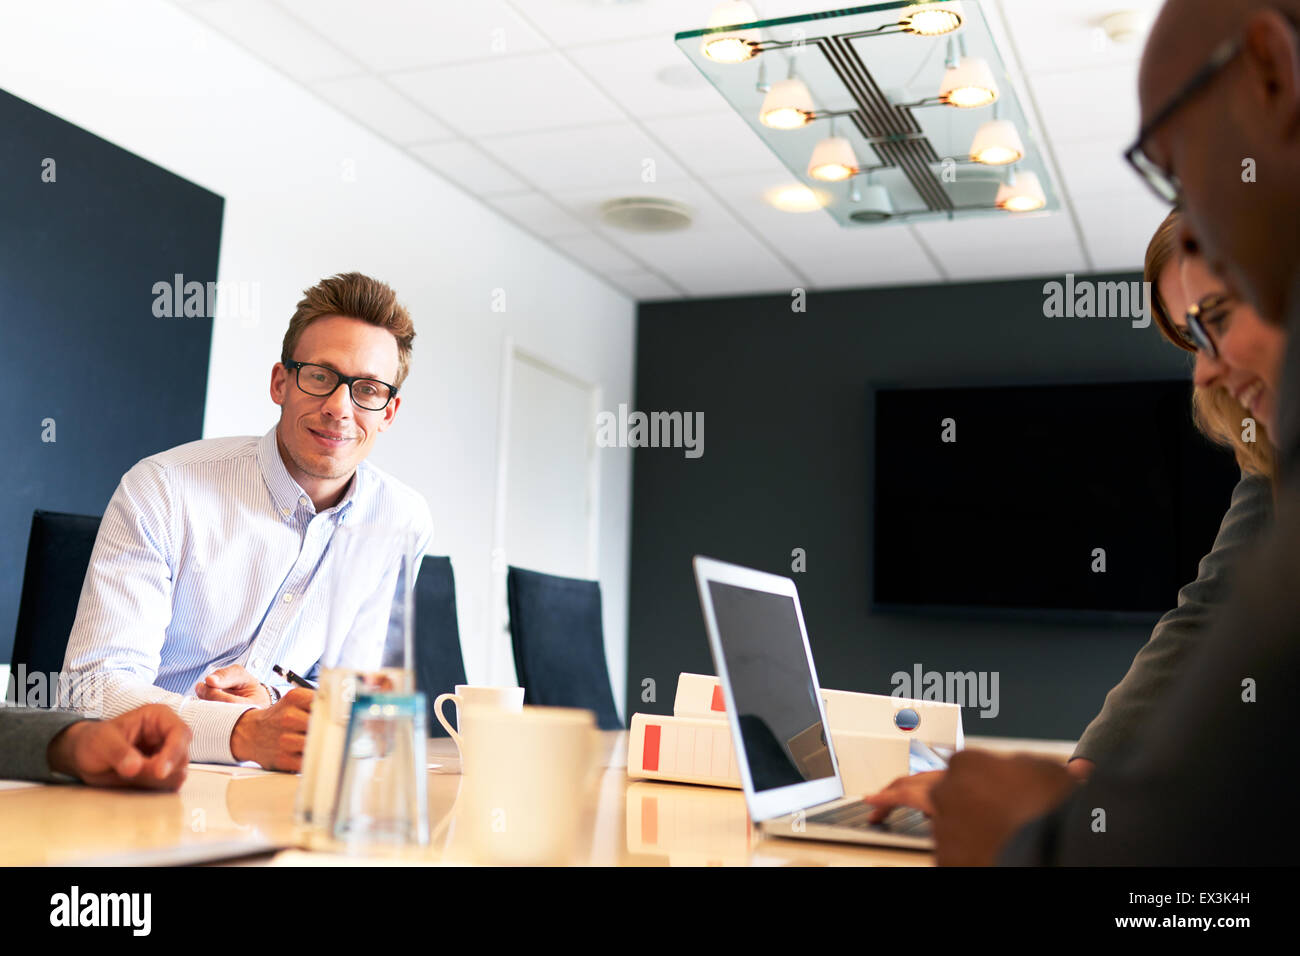 Young white male executive smiling at camera during work meeting. - Stock Image